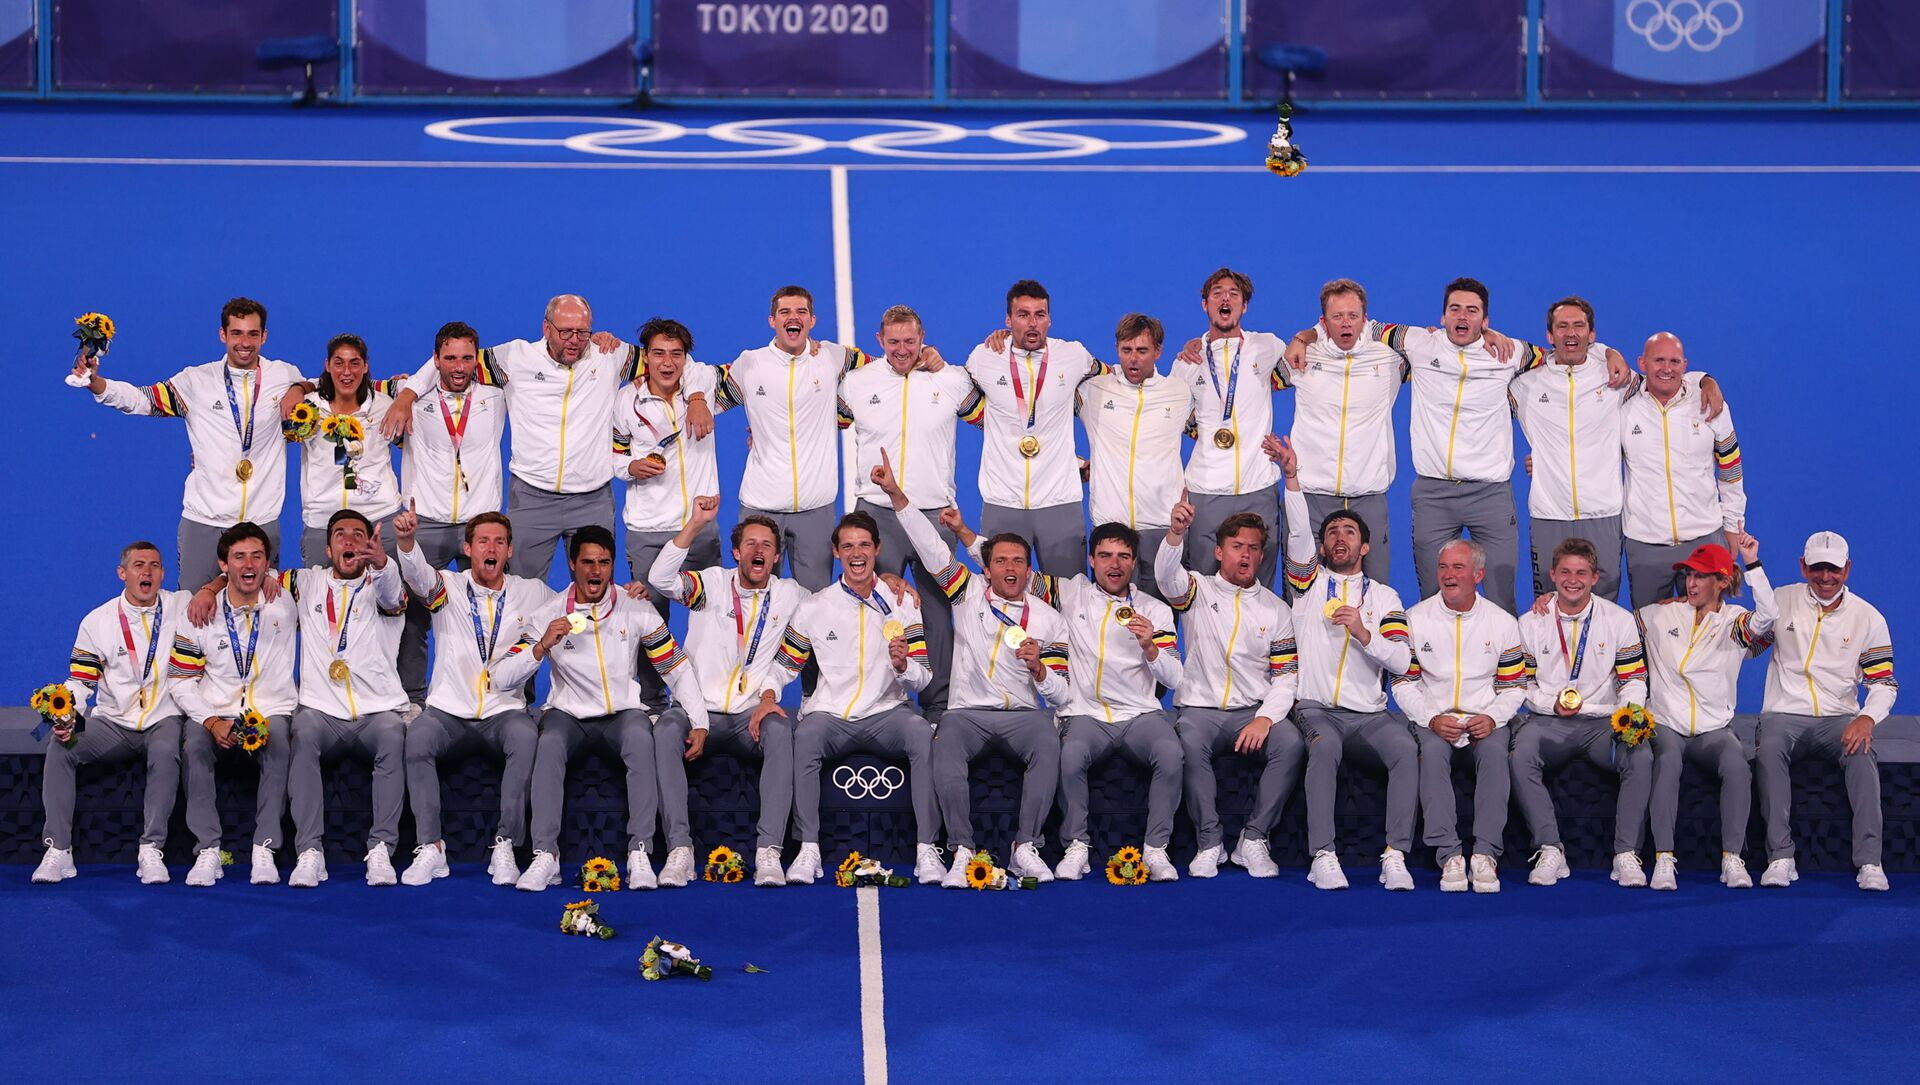 The players and staff of Belgium celebrate as they pose for pictures on the podium after receiving their gold medals.  - Sputnik International, 1920, 05.08.2021